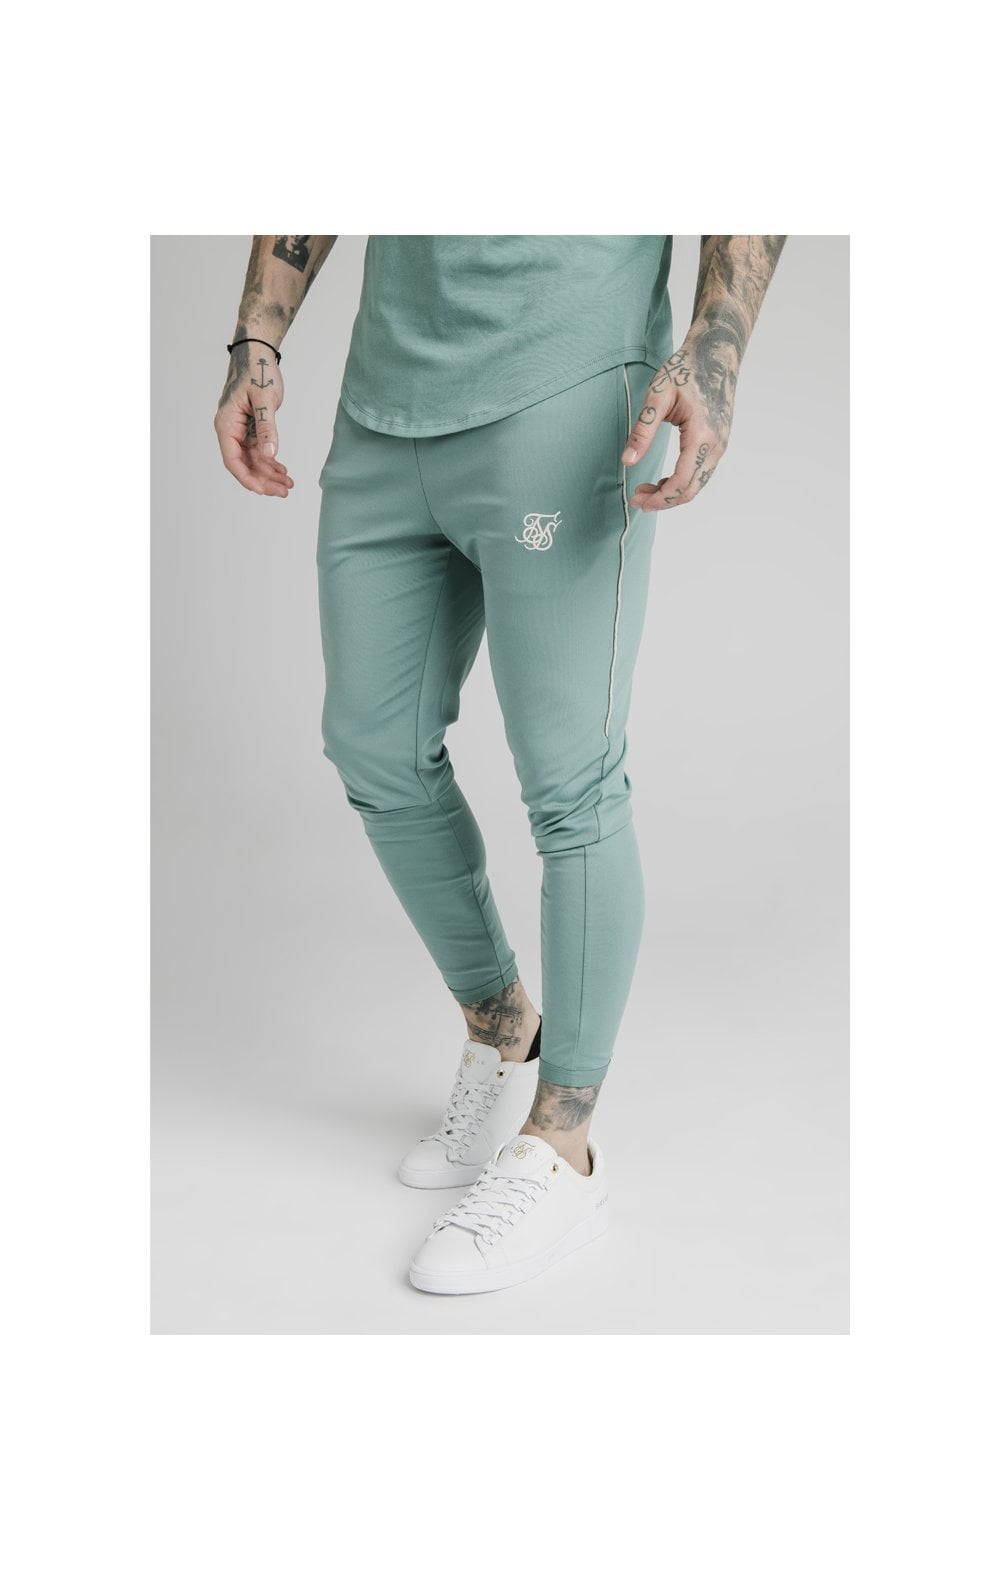 Load image into Gallery viewer, SikSilk Scope Track Pants - Light Petrol Blue